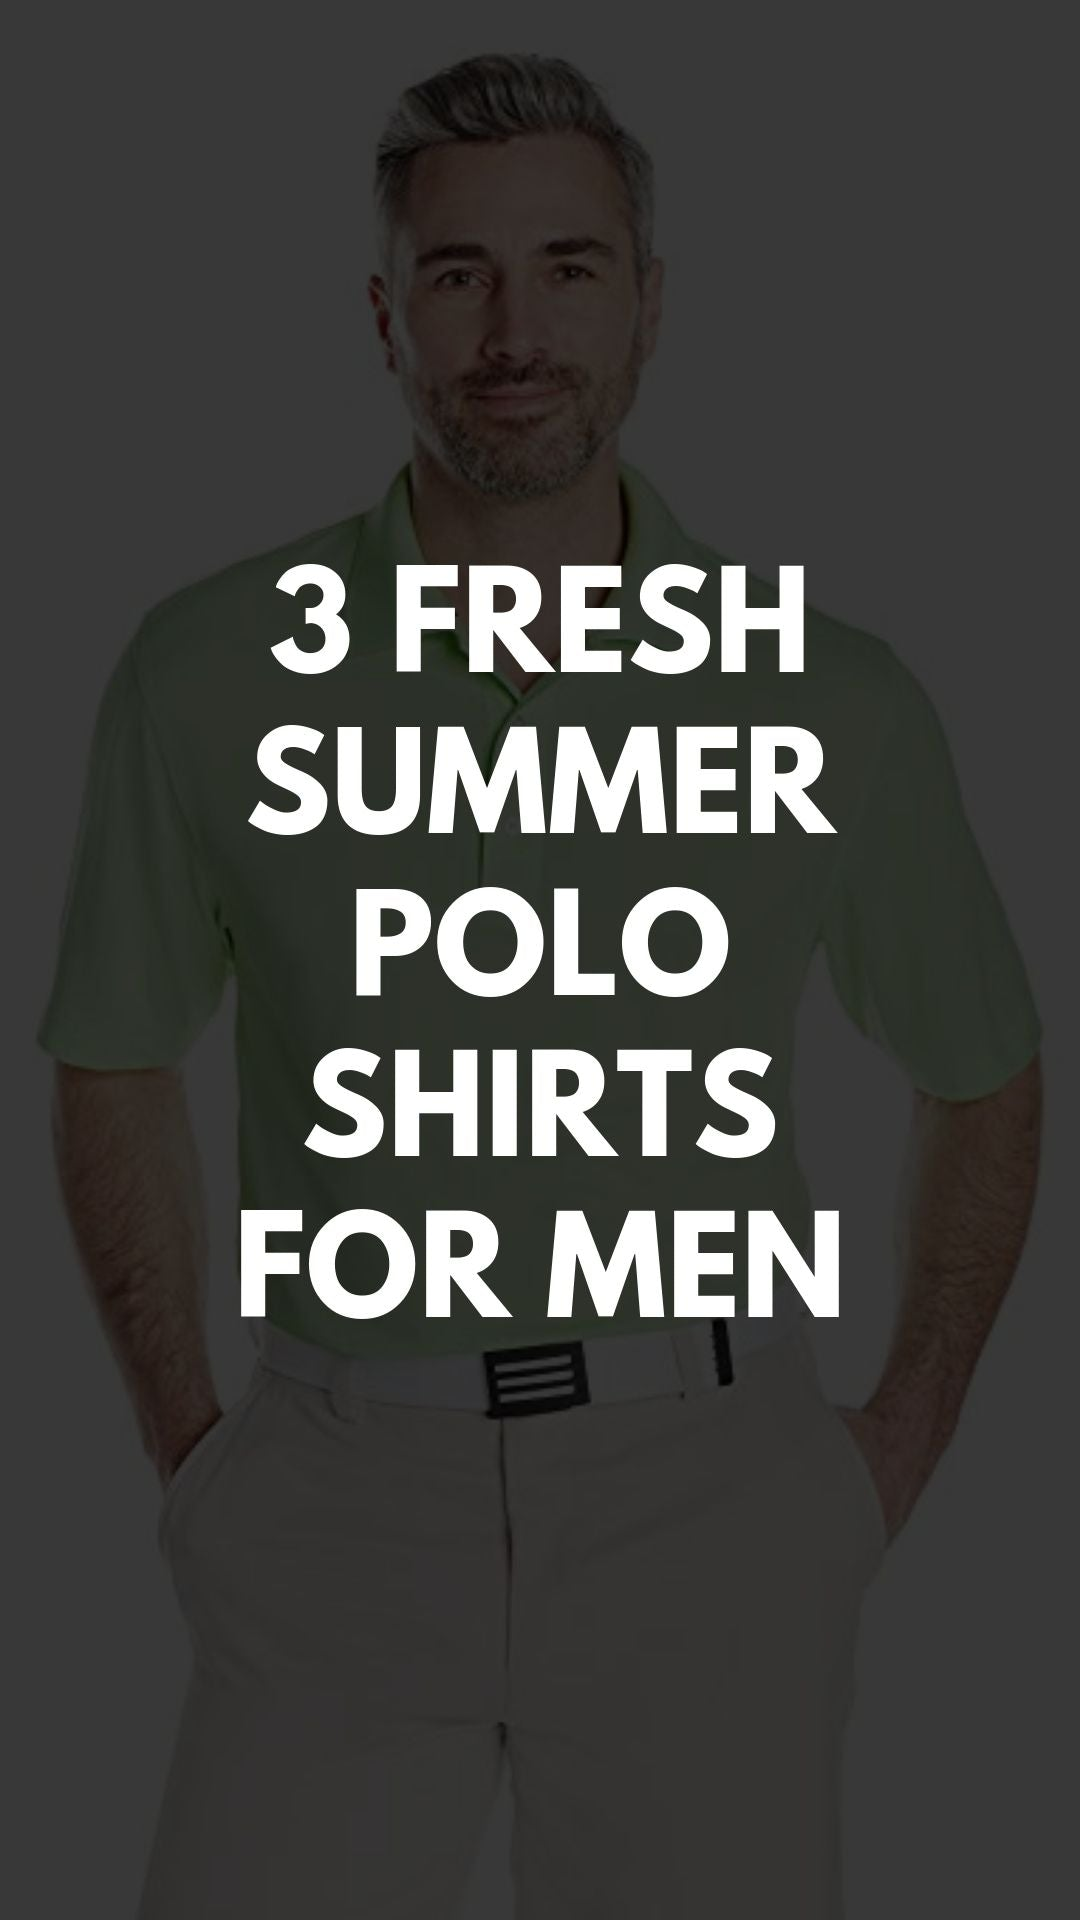 3 Summer Polo Shirts For Men